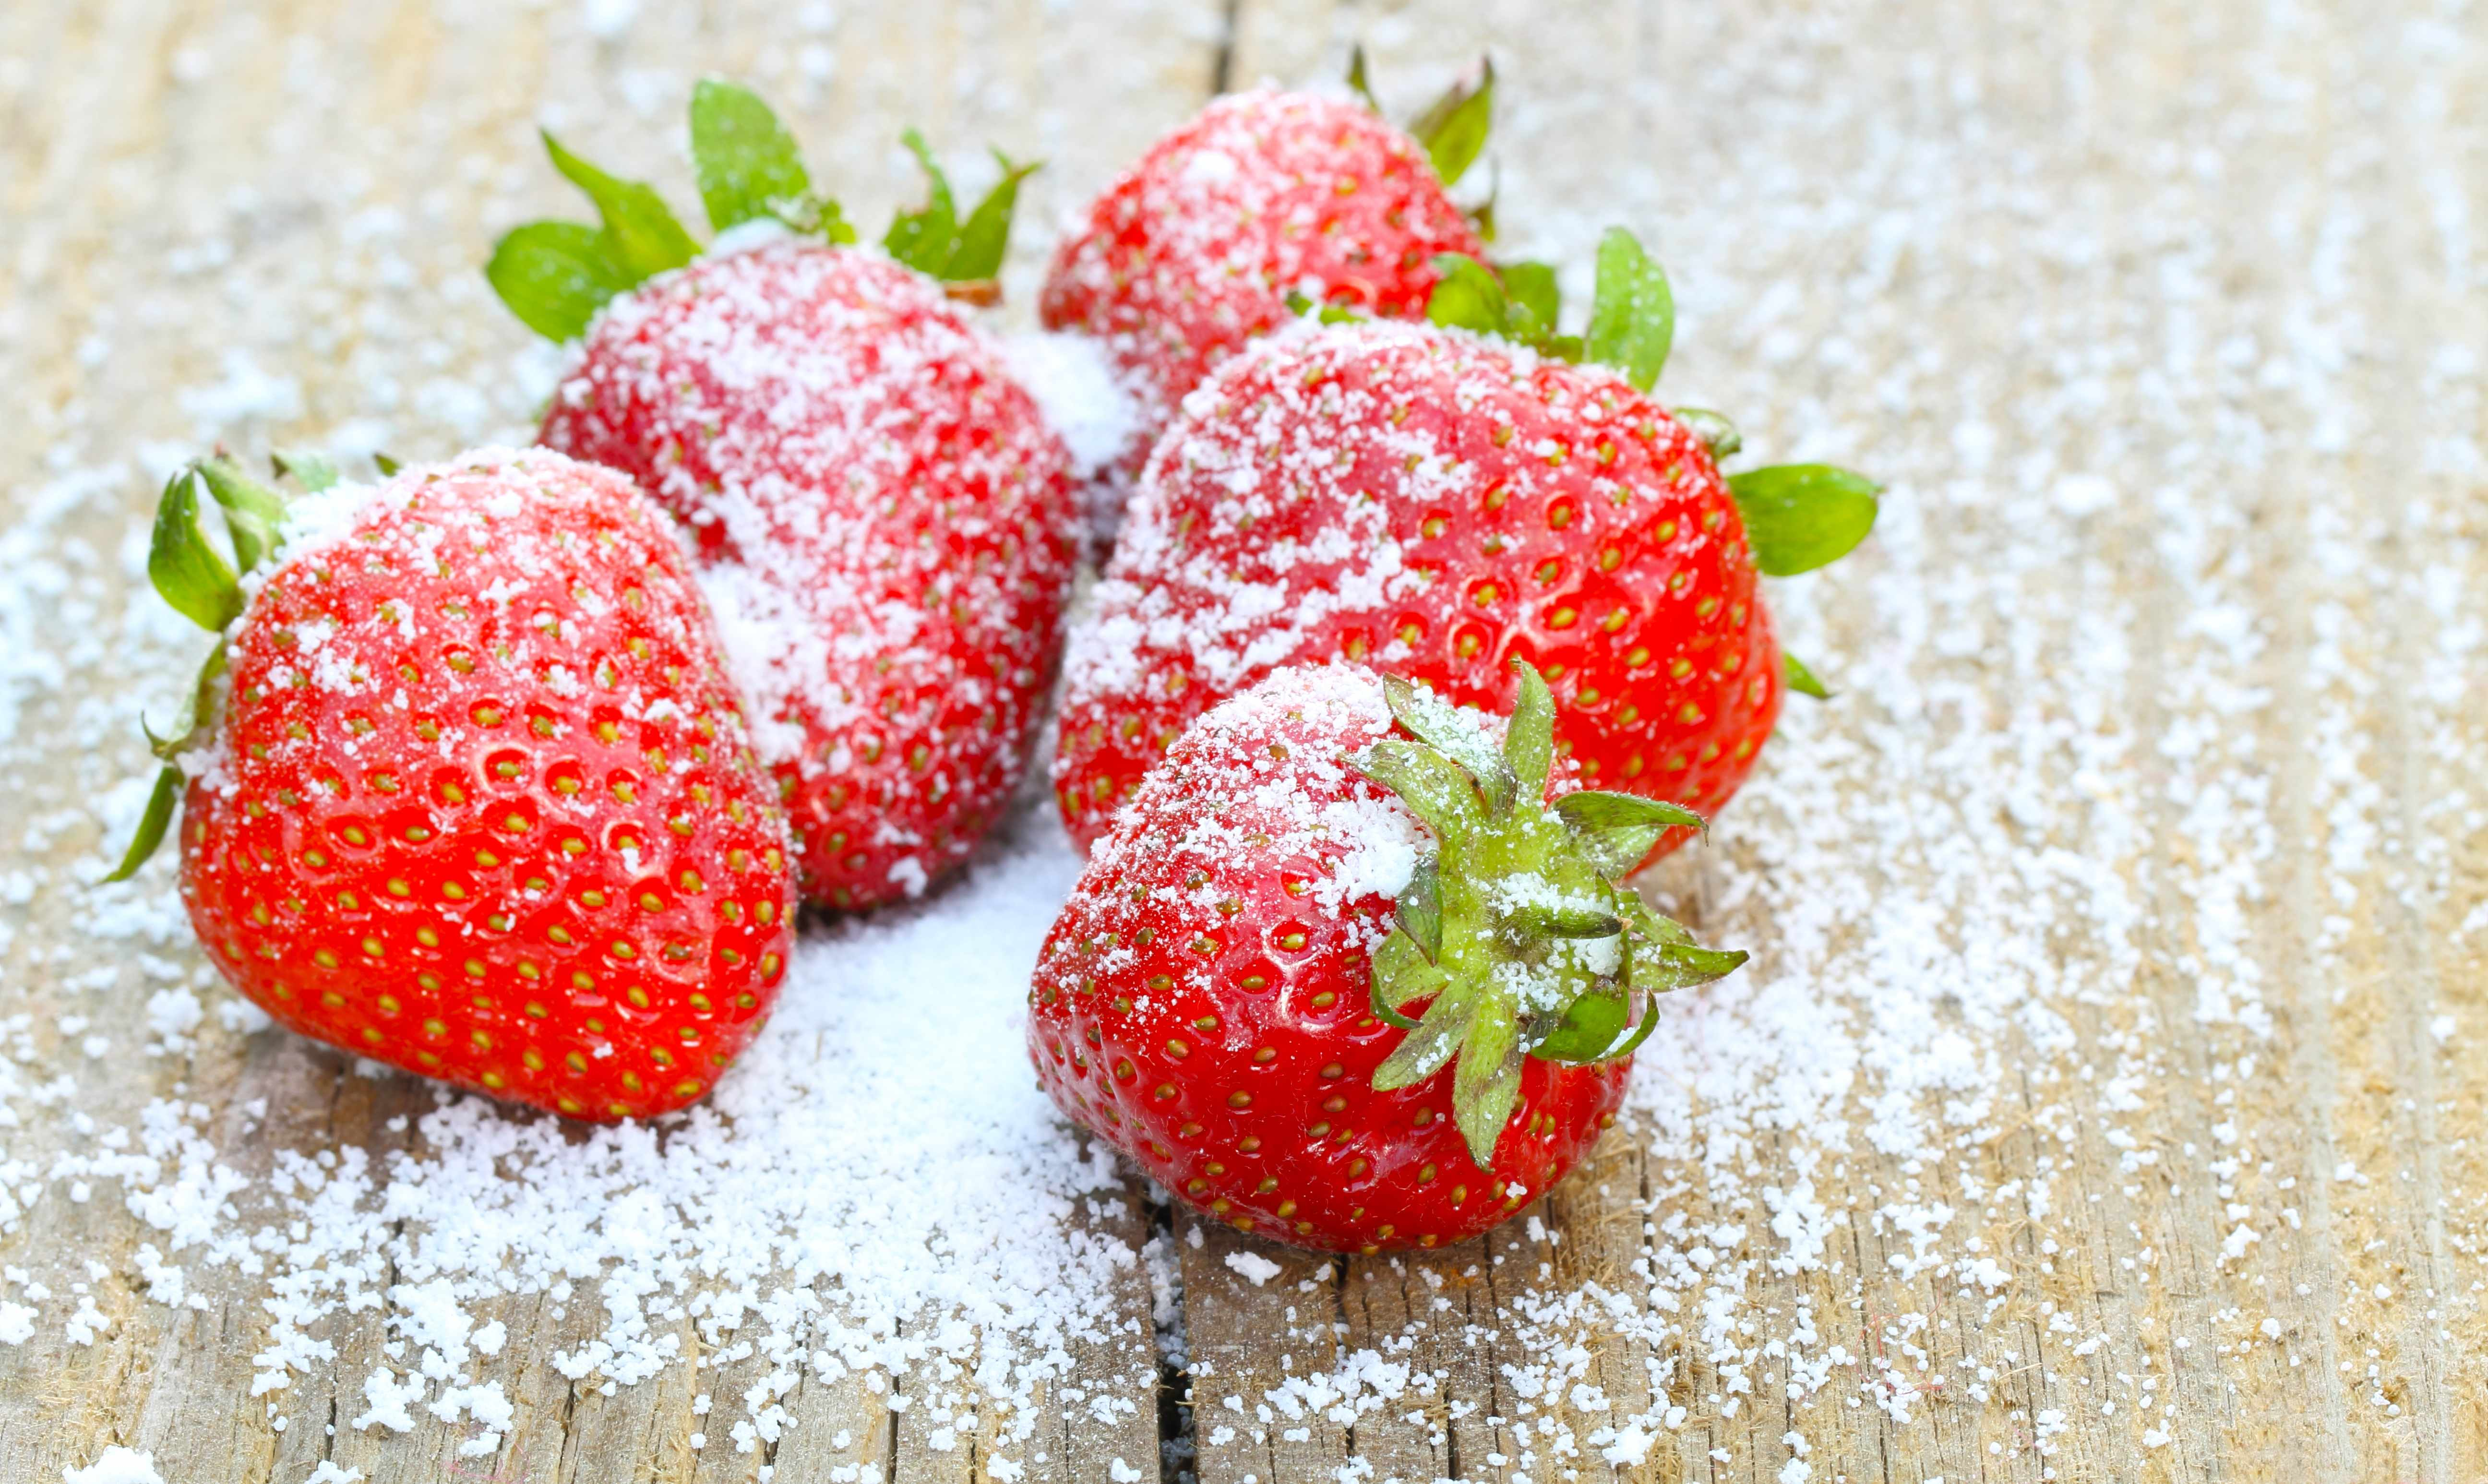 fresh strawberries on a table with sprinkled sugar